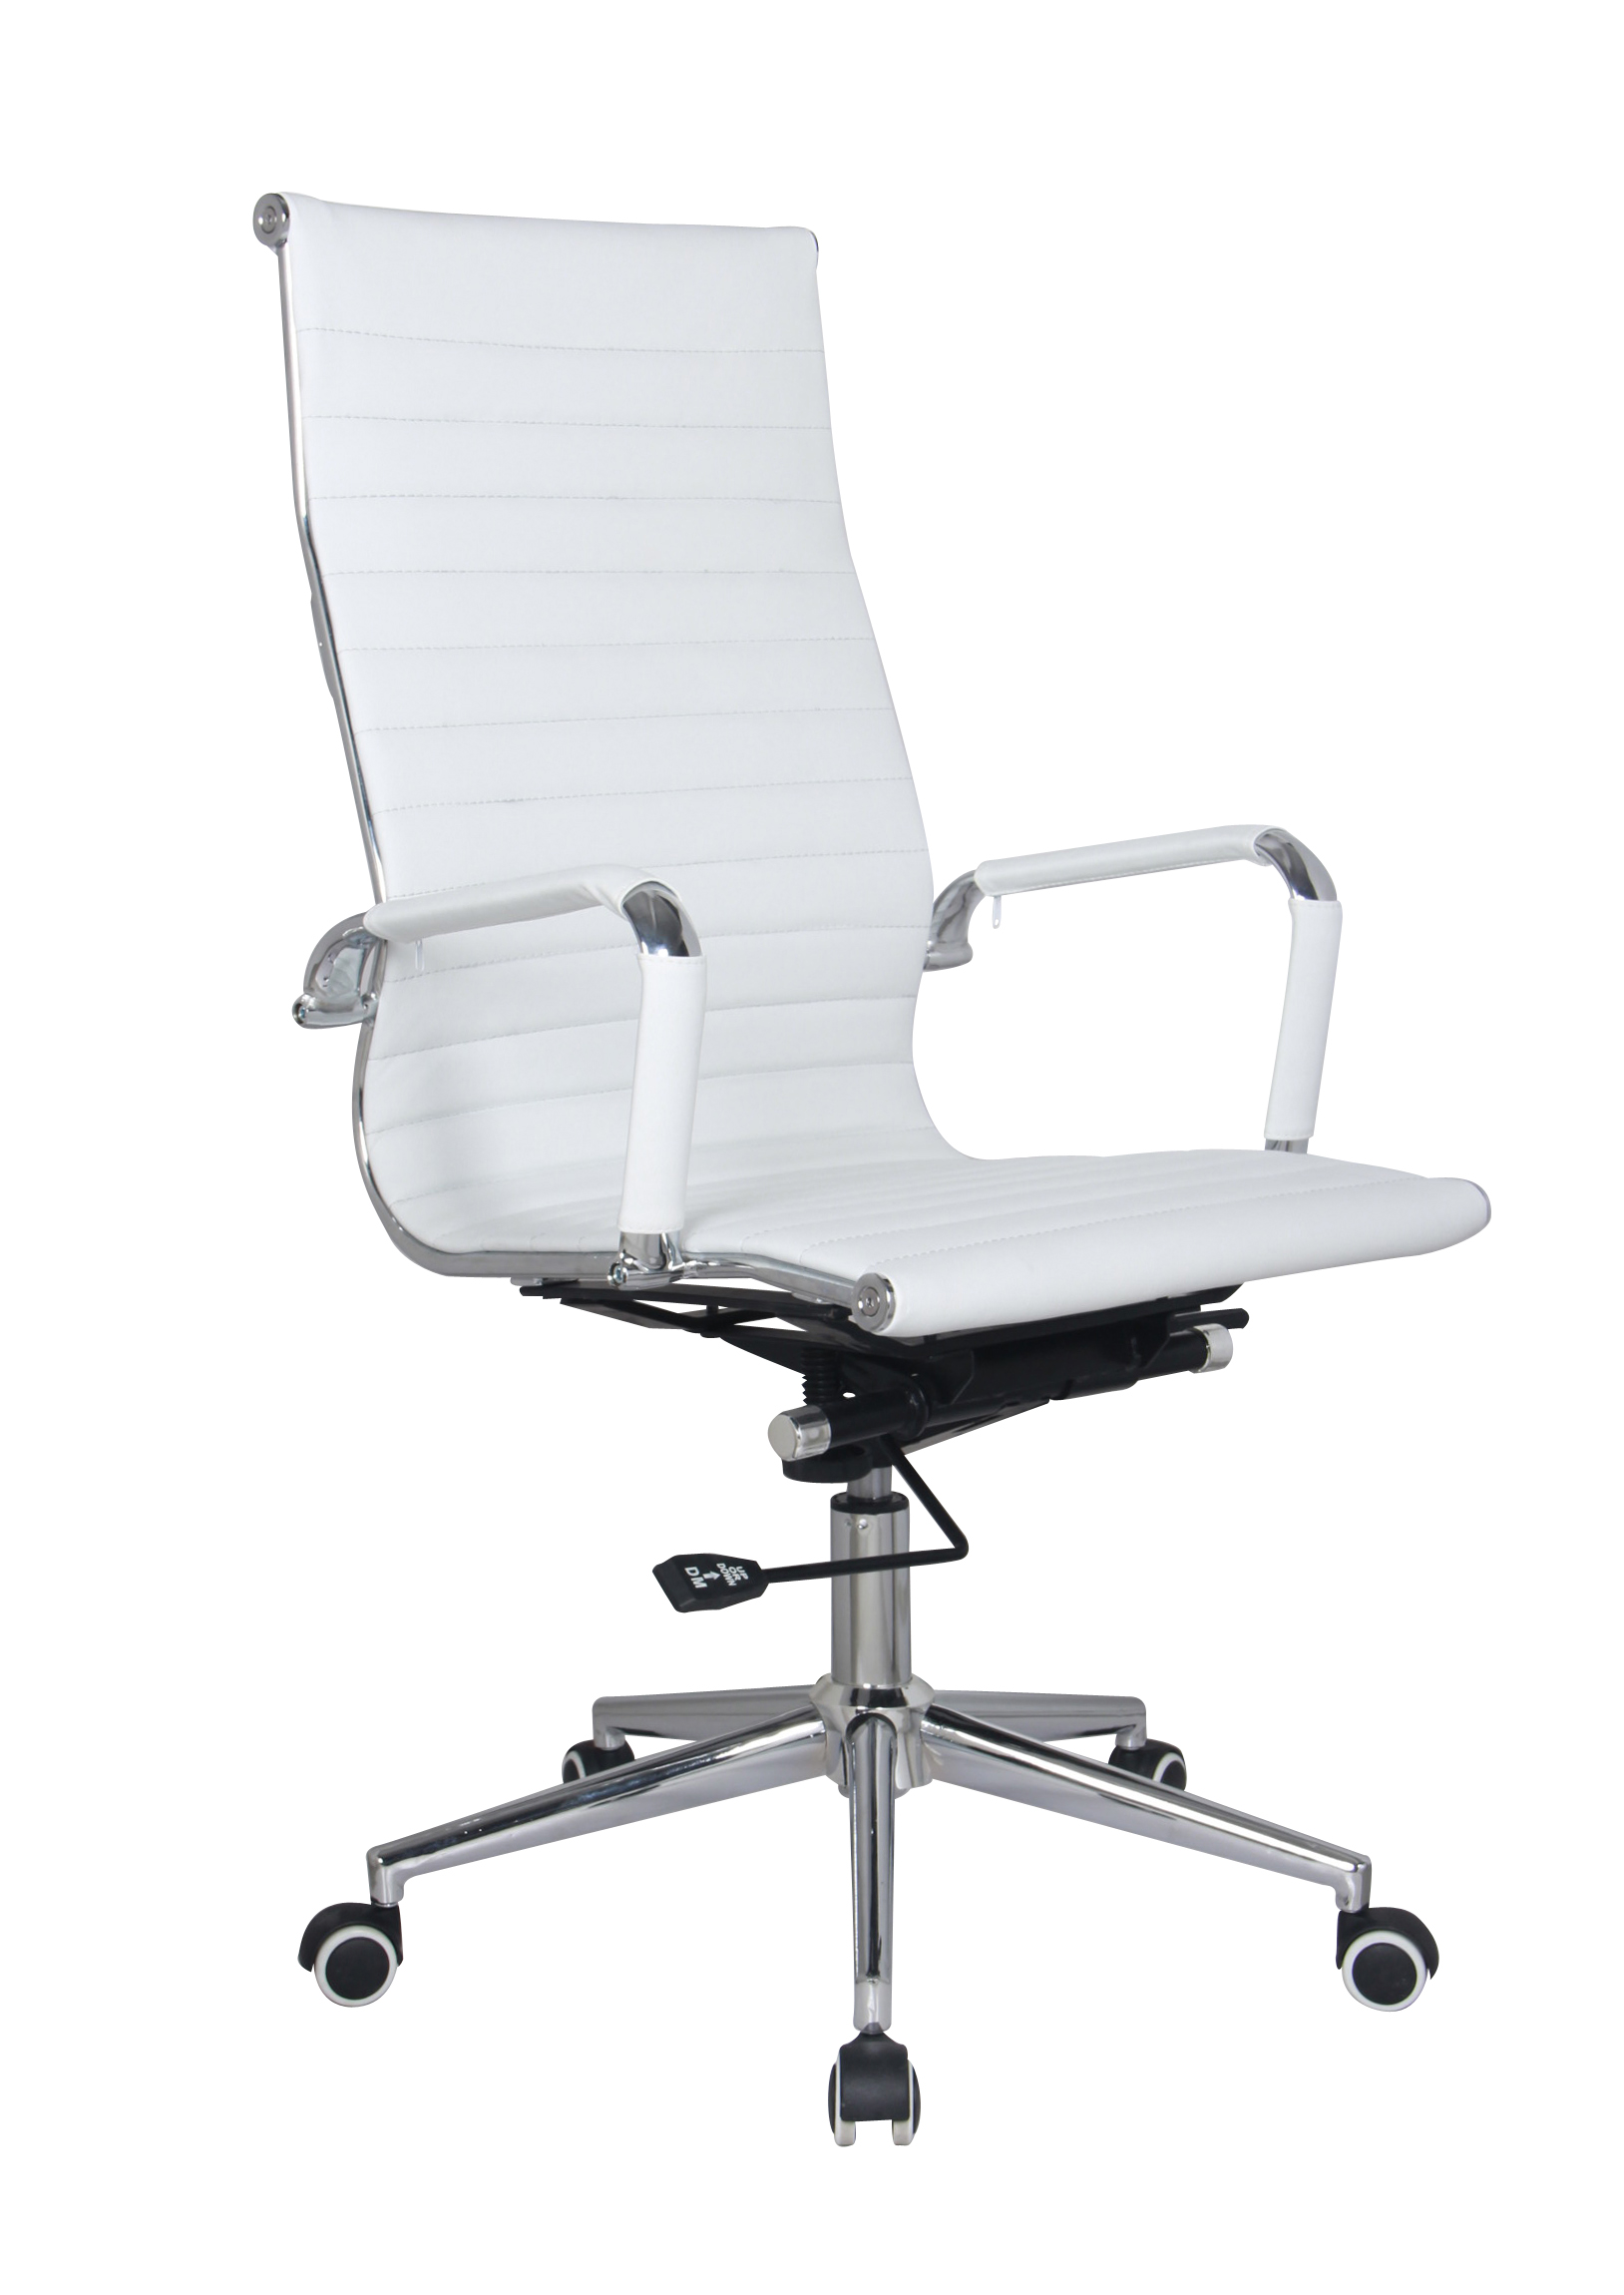 Classic High Back Chair - White | Oxford Office Furniture